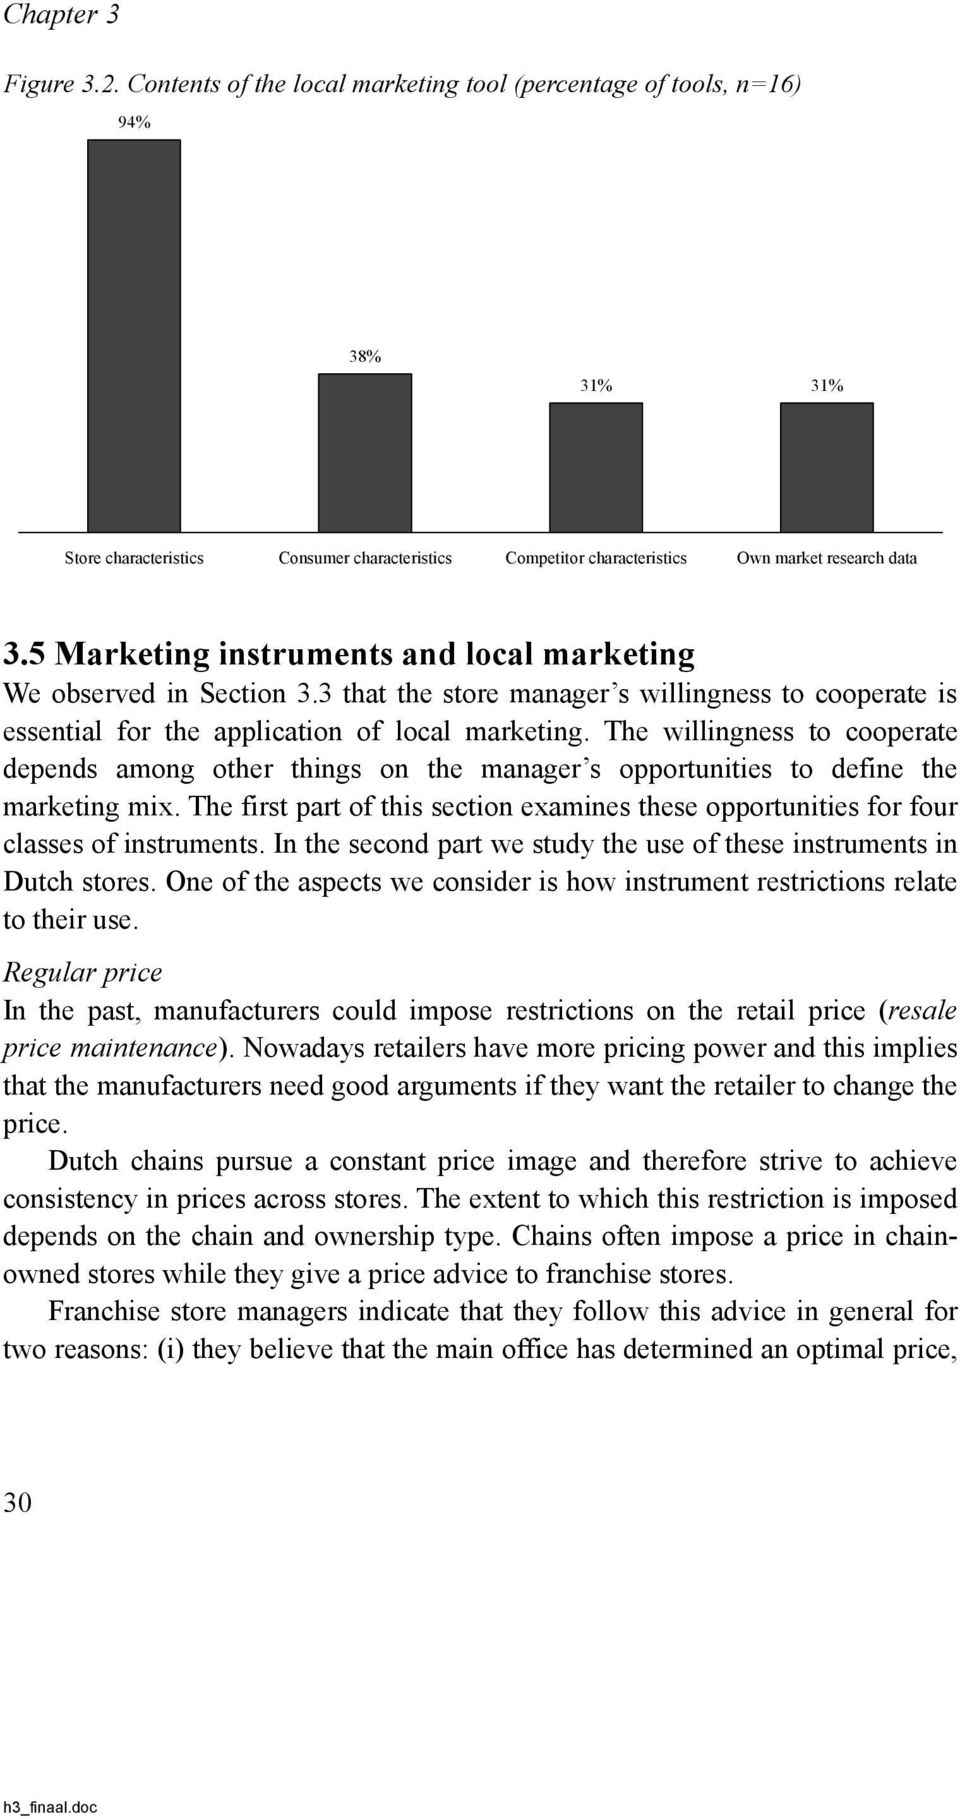 5 Marketing instruments and local marketing We observed in Section 3.3 that the store manager s willingness to cooperate is essential for the application of local marketing.